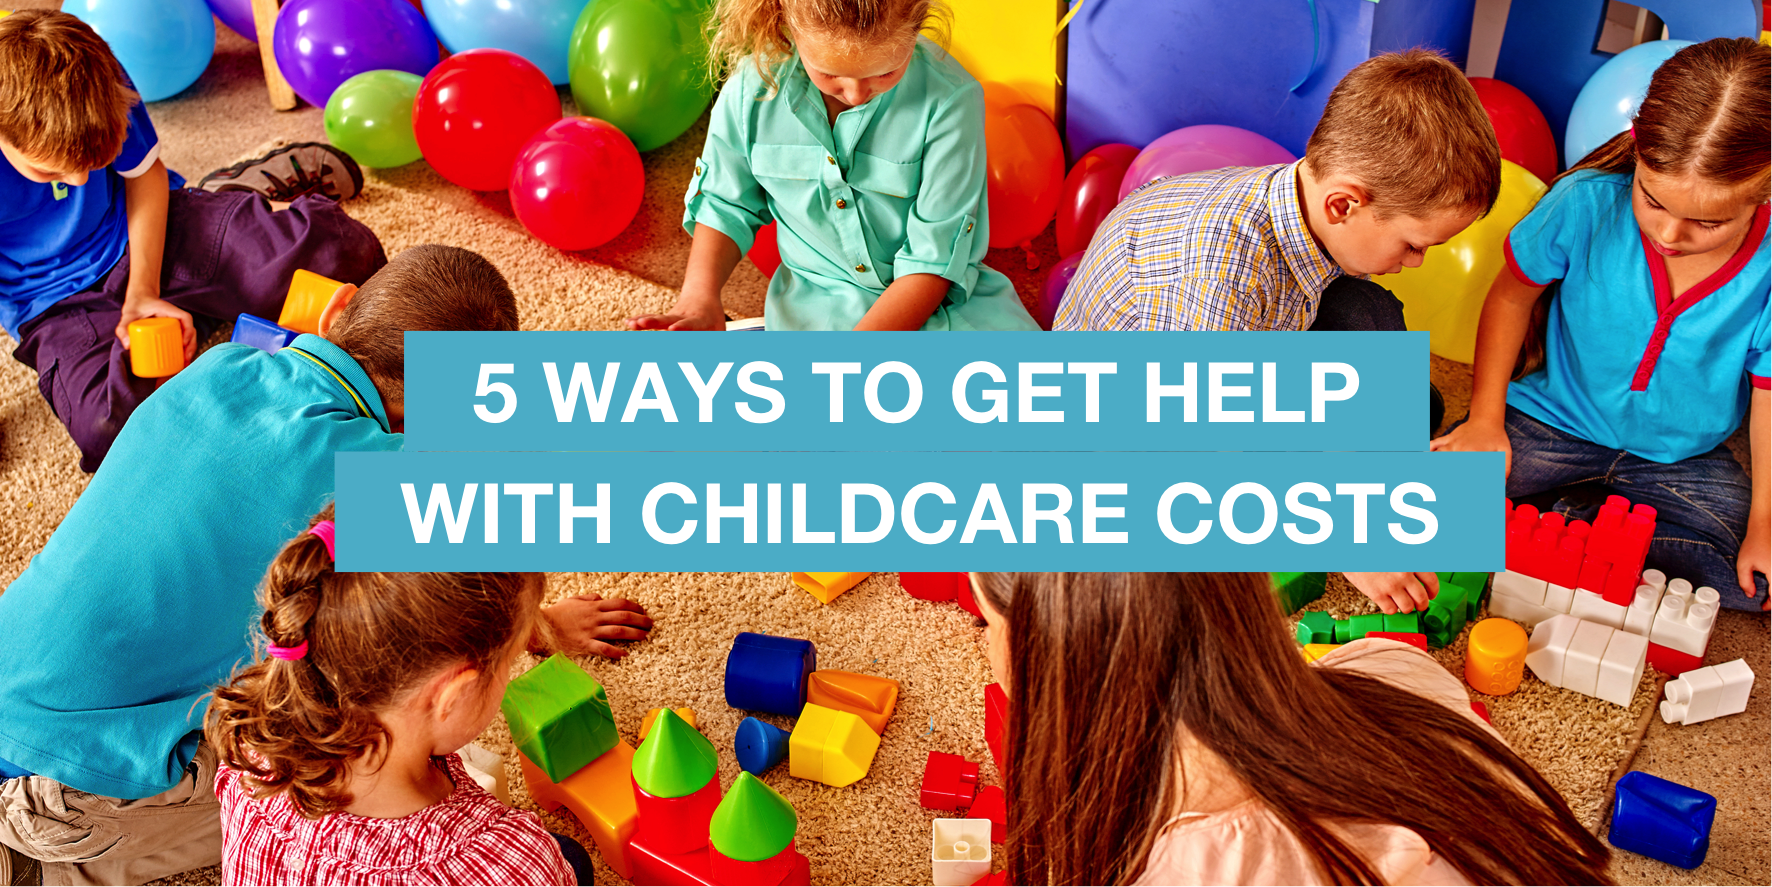 5 ways to get help with childcare costs